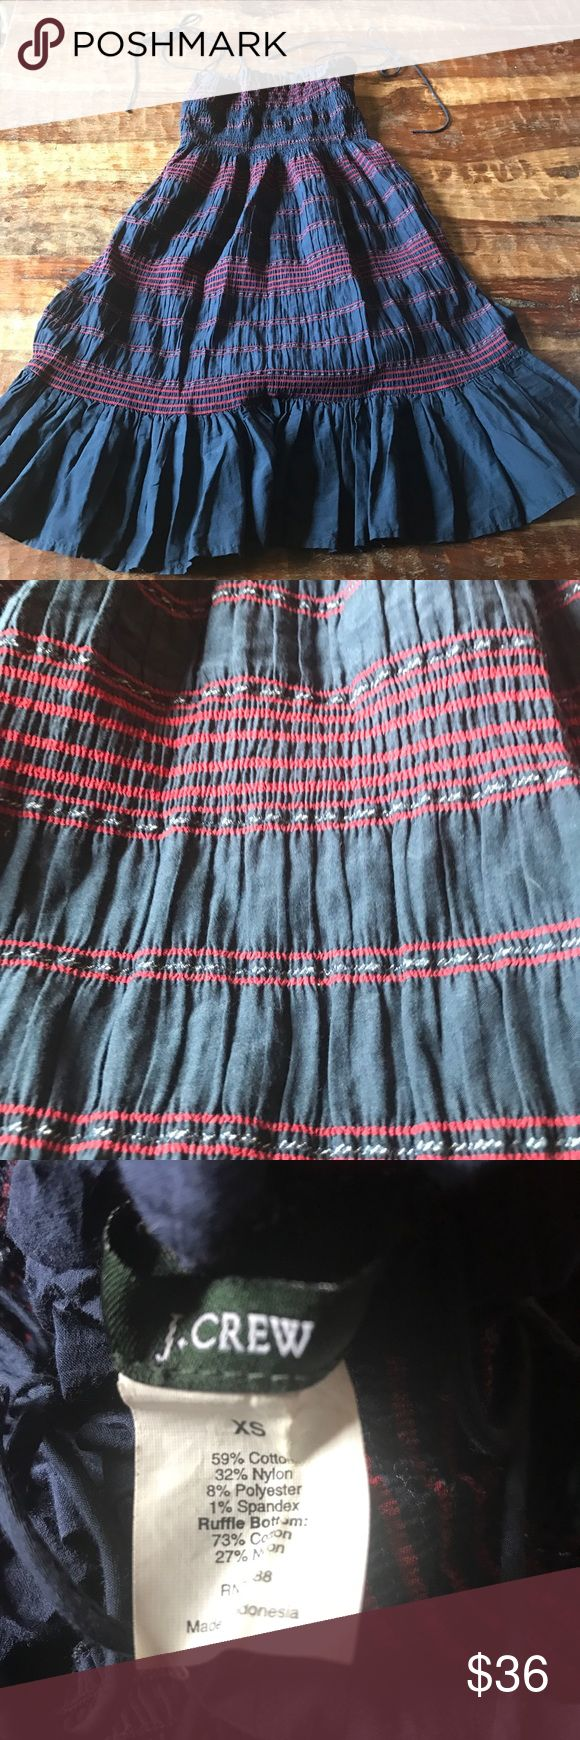 "J. Crew Boho Dress Super cute navy dress with red stitching.  Smocked top with a boho look. In excellent condition. Can be worn with or without the straps. Dress 26"" from the chest down. J. Crew Dresses"